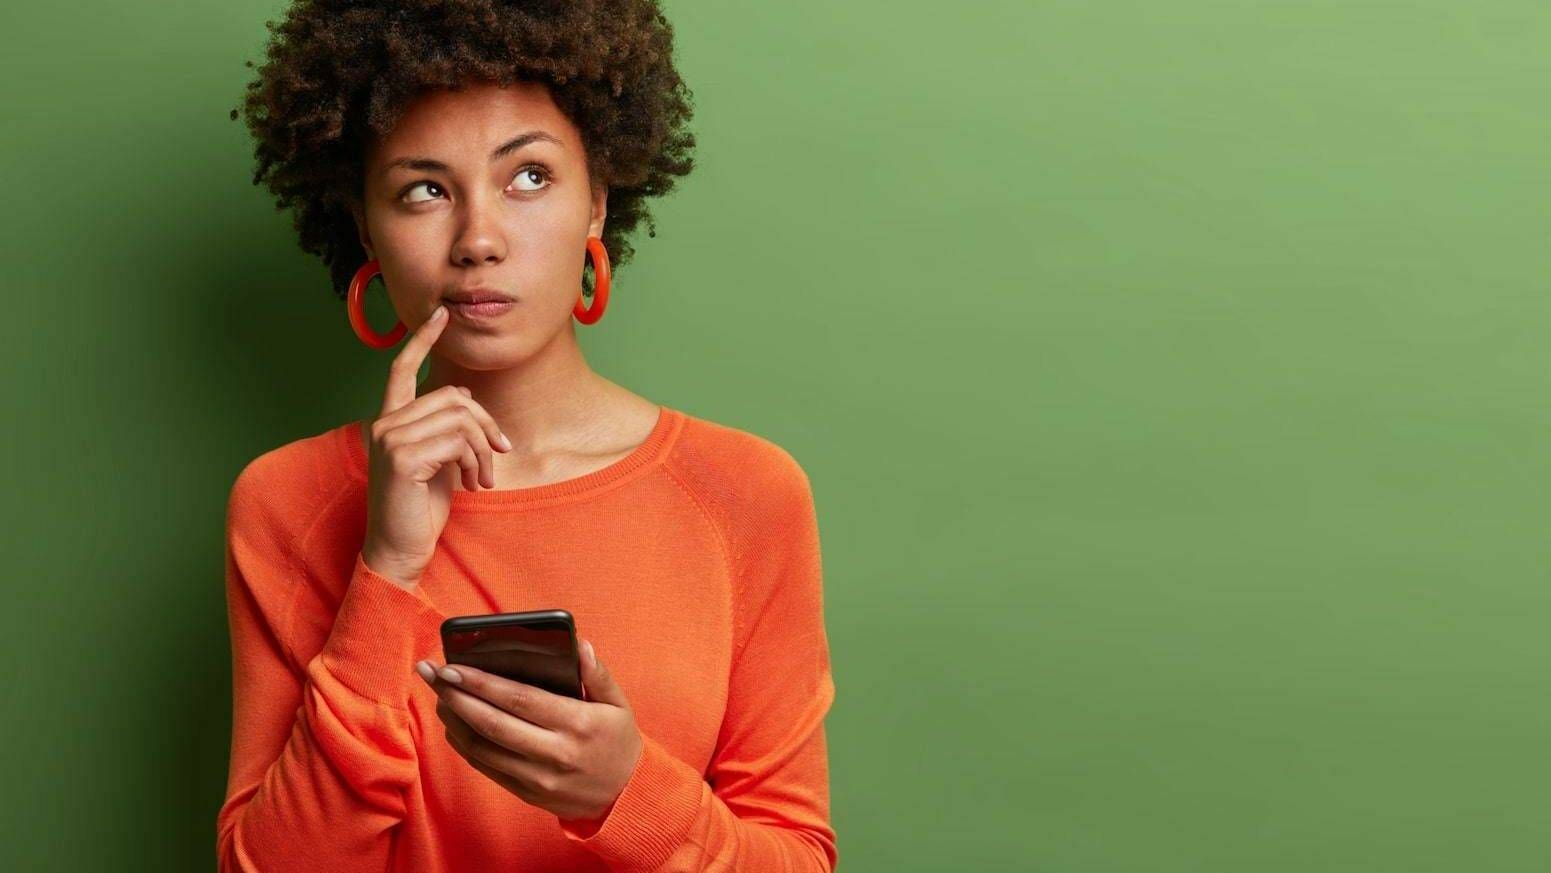 Photo of woman holding a smart phone with an inquisitive look on her face, rewire, social media at work